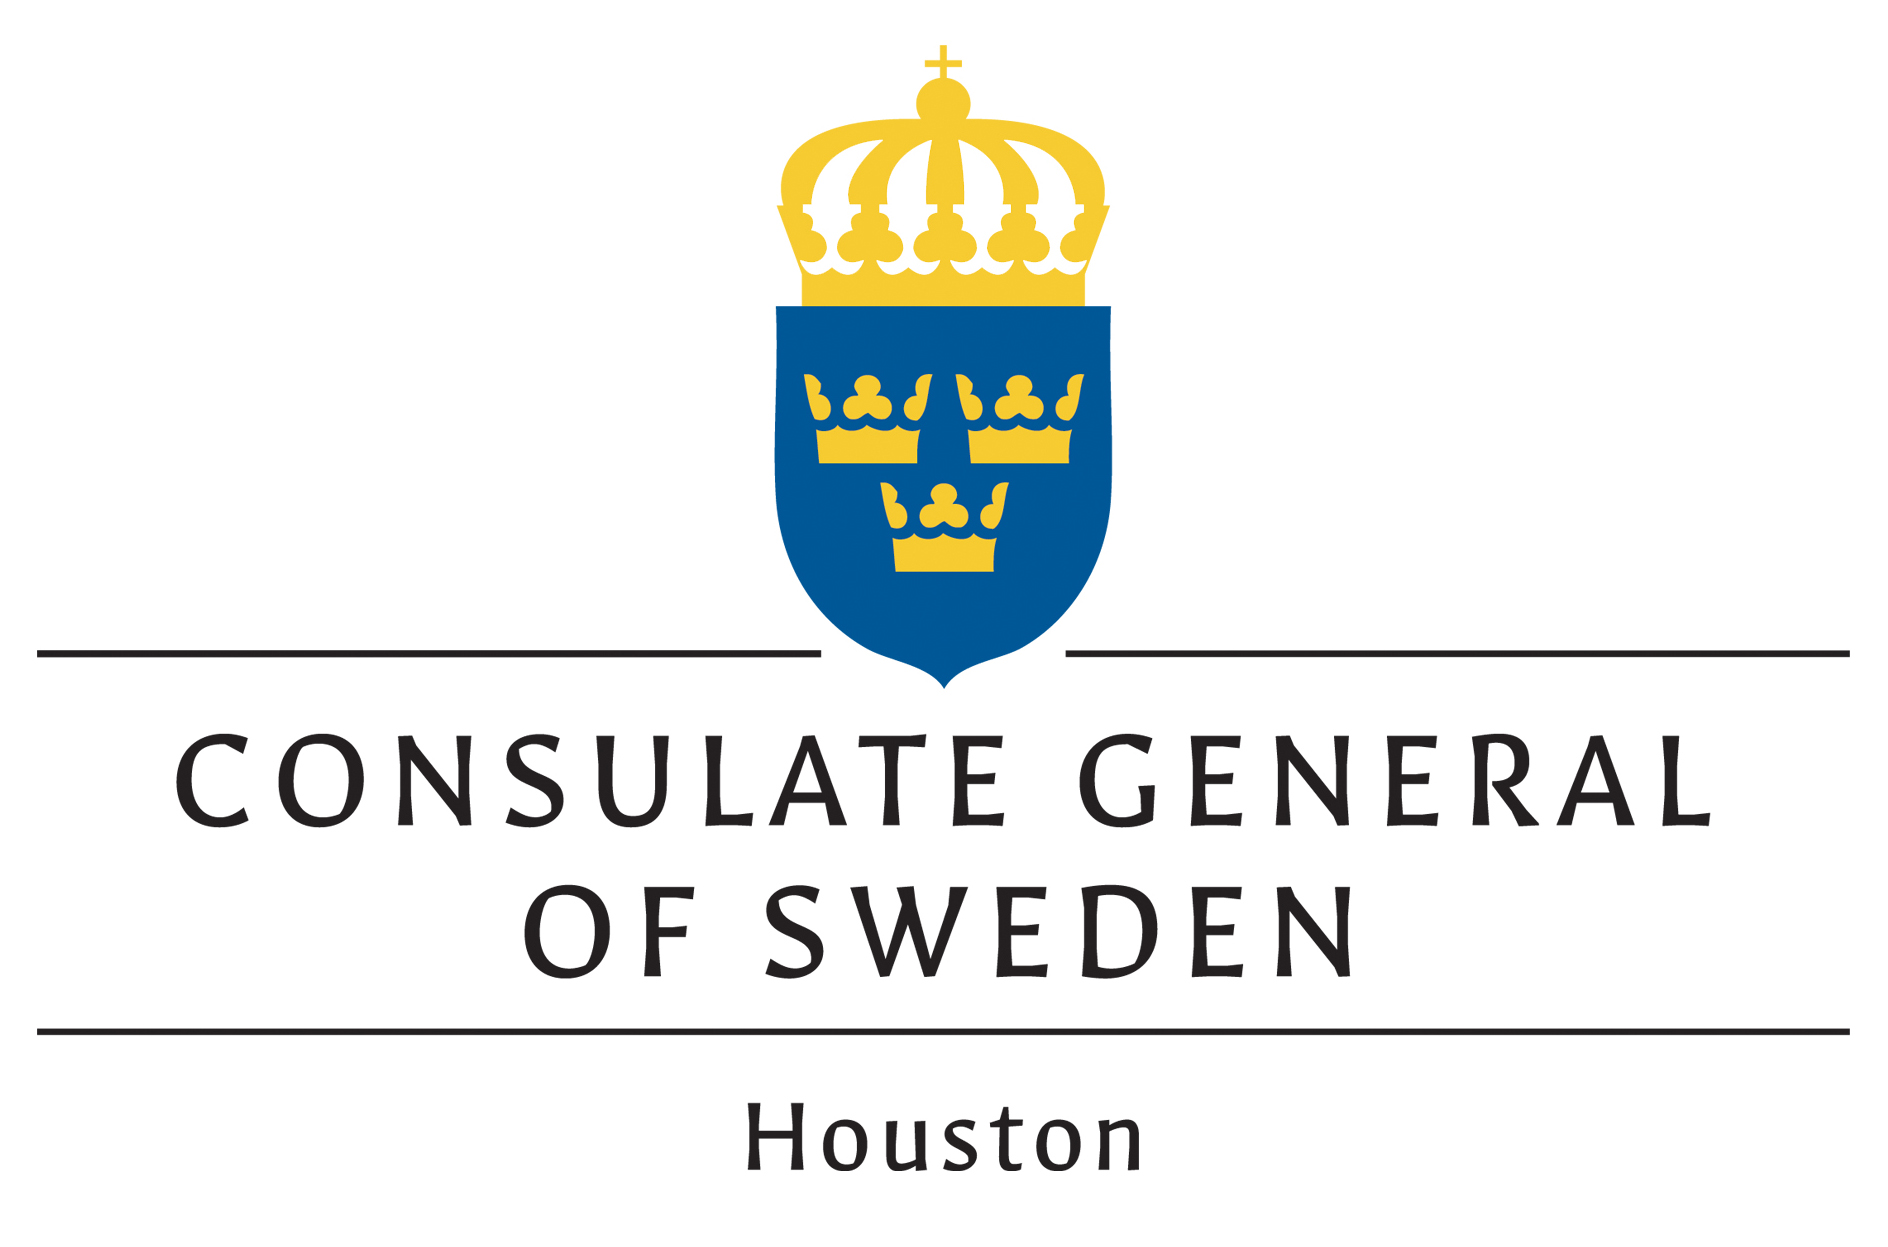 Consulate General of Sweden